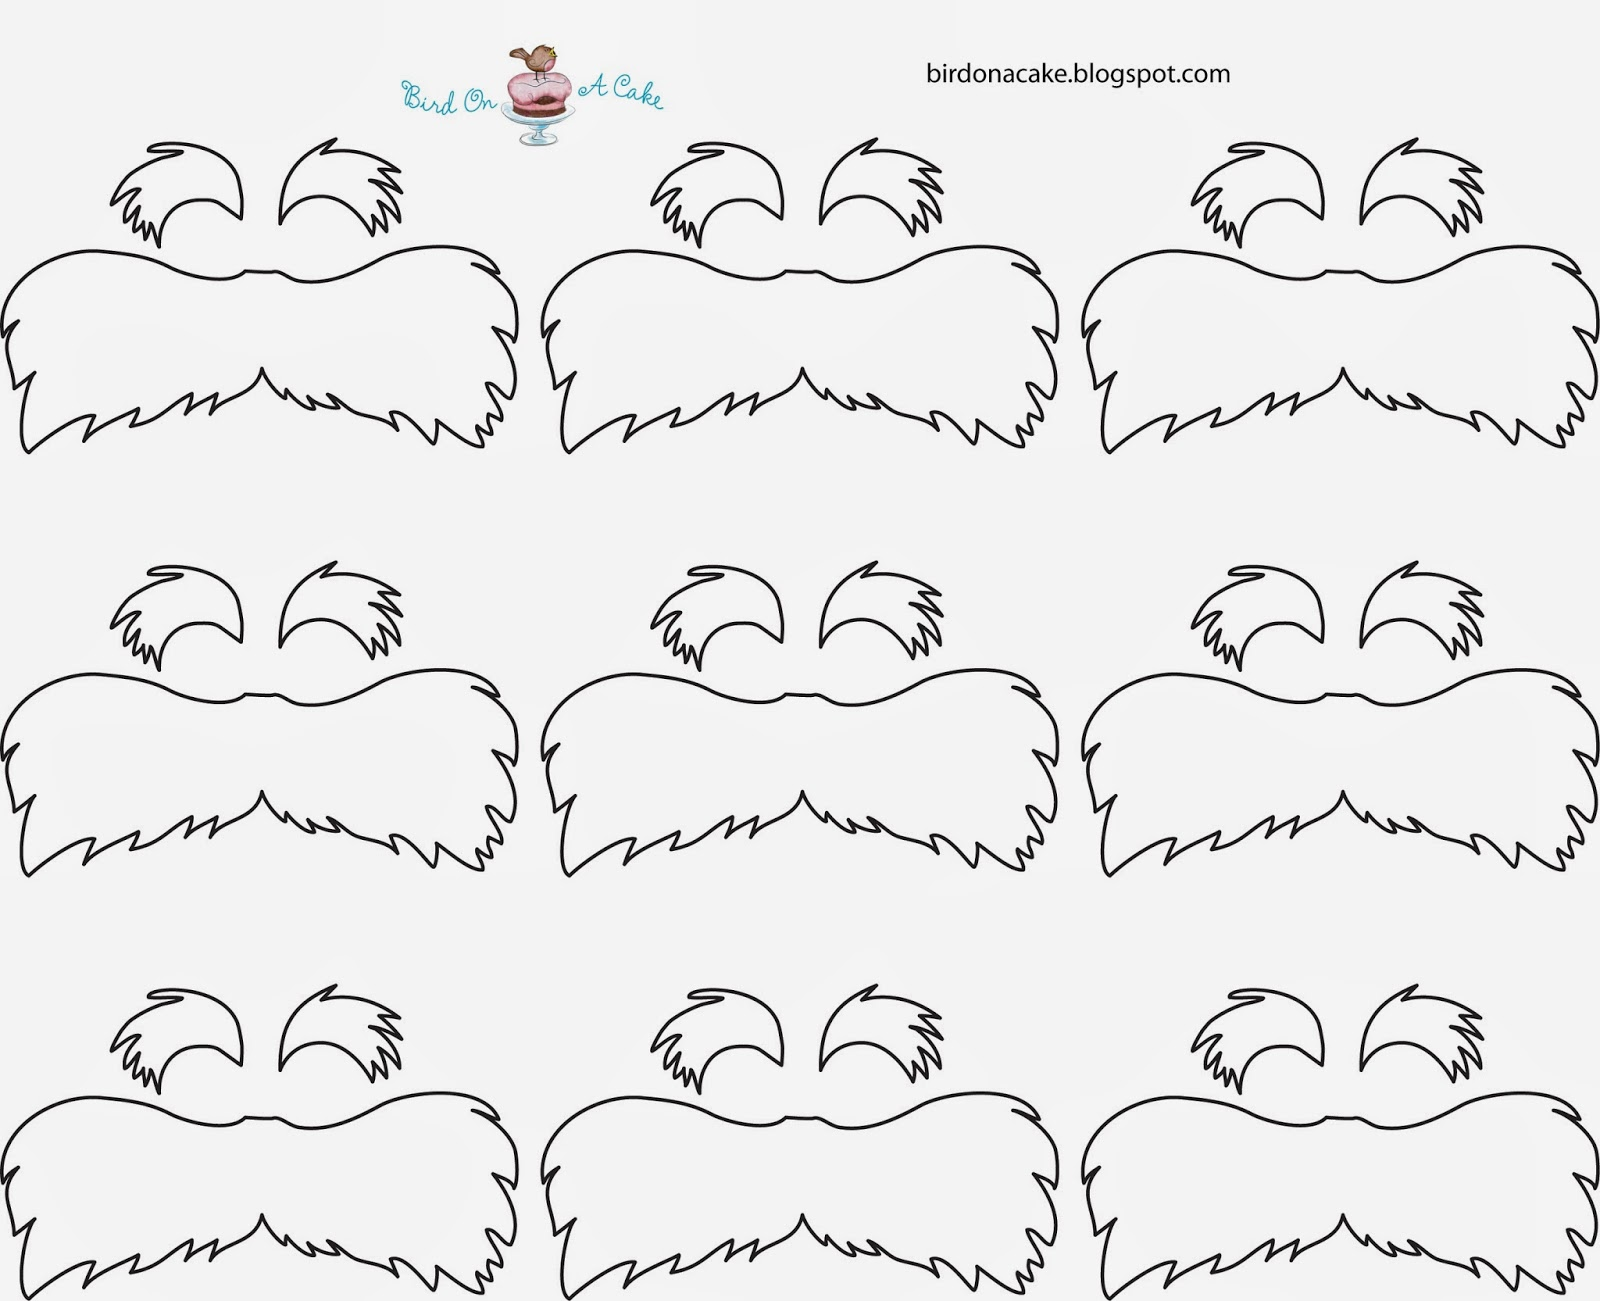 Dynamite image in printable lorax mustache and eyebrows